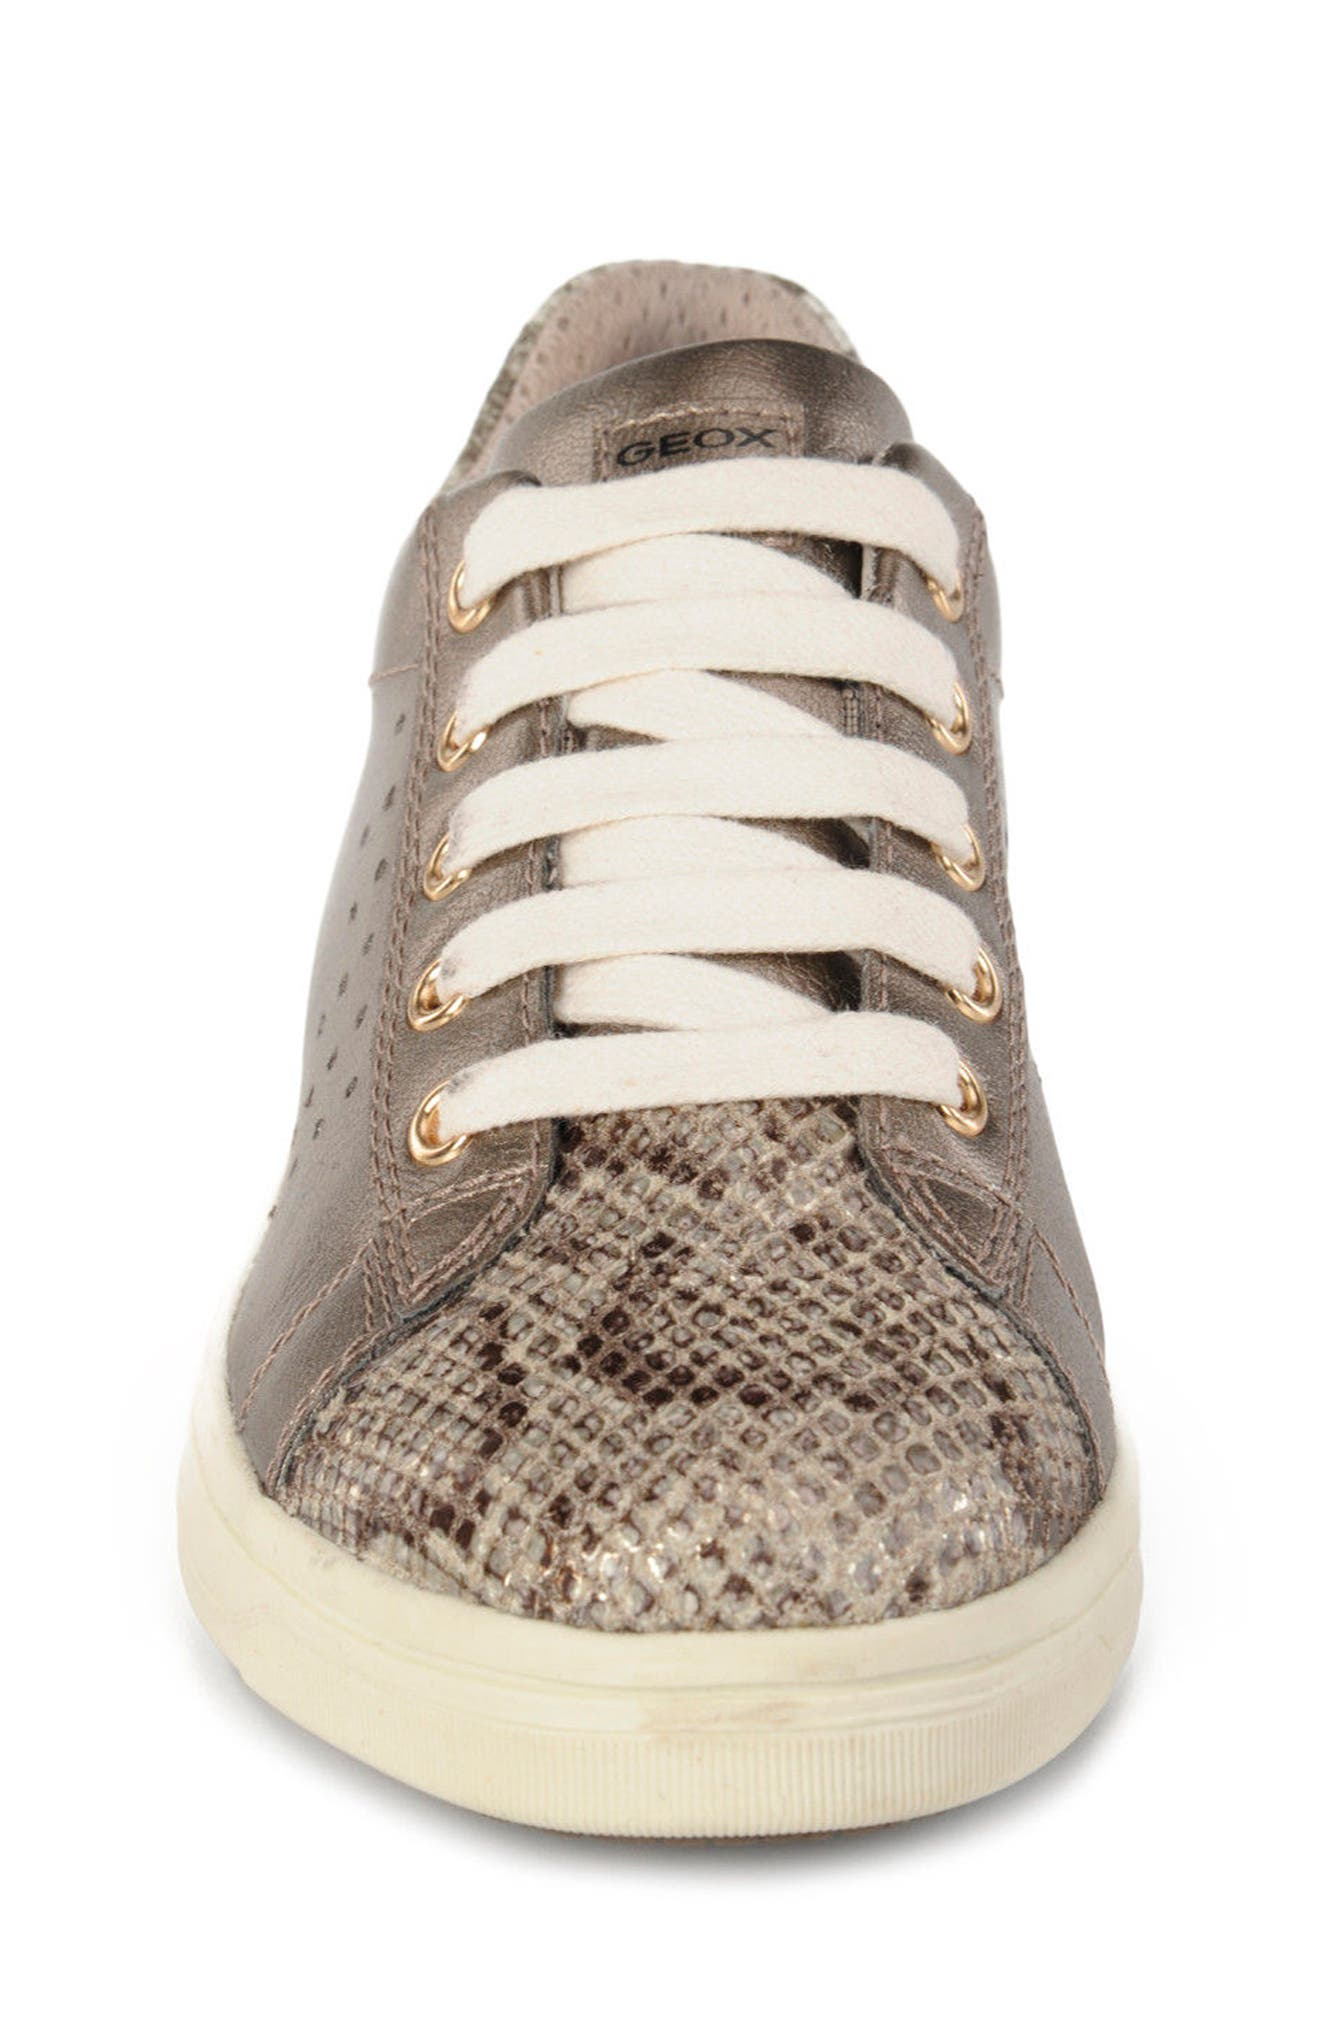 Cave Up Girl Low Top Sneaker,                             Alternate thumbnail 4, color,                             Gold